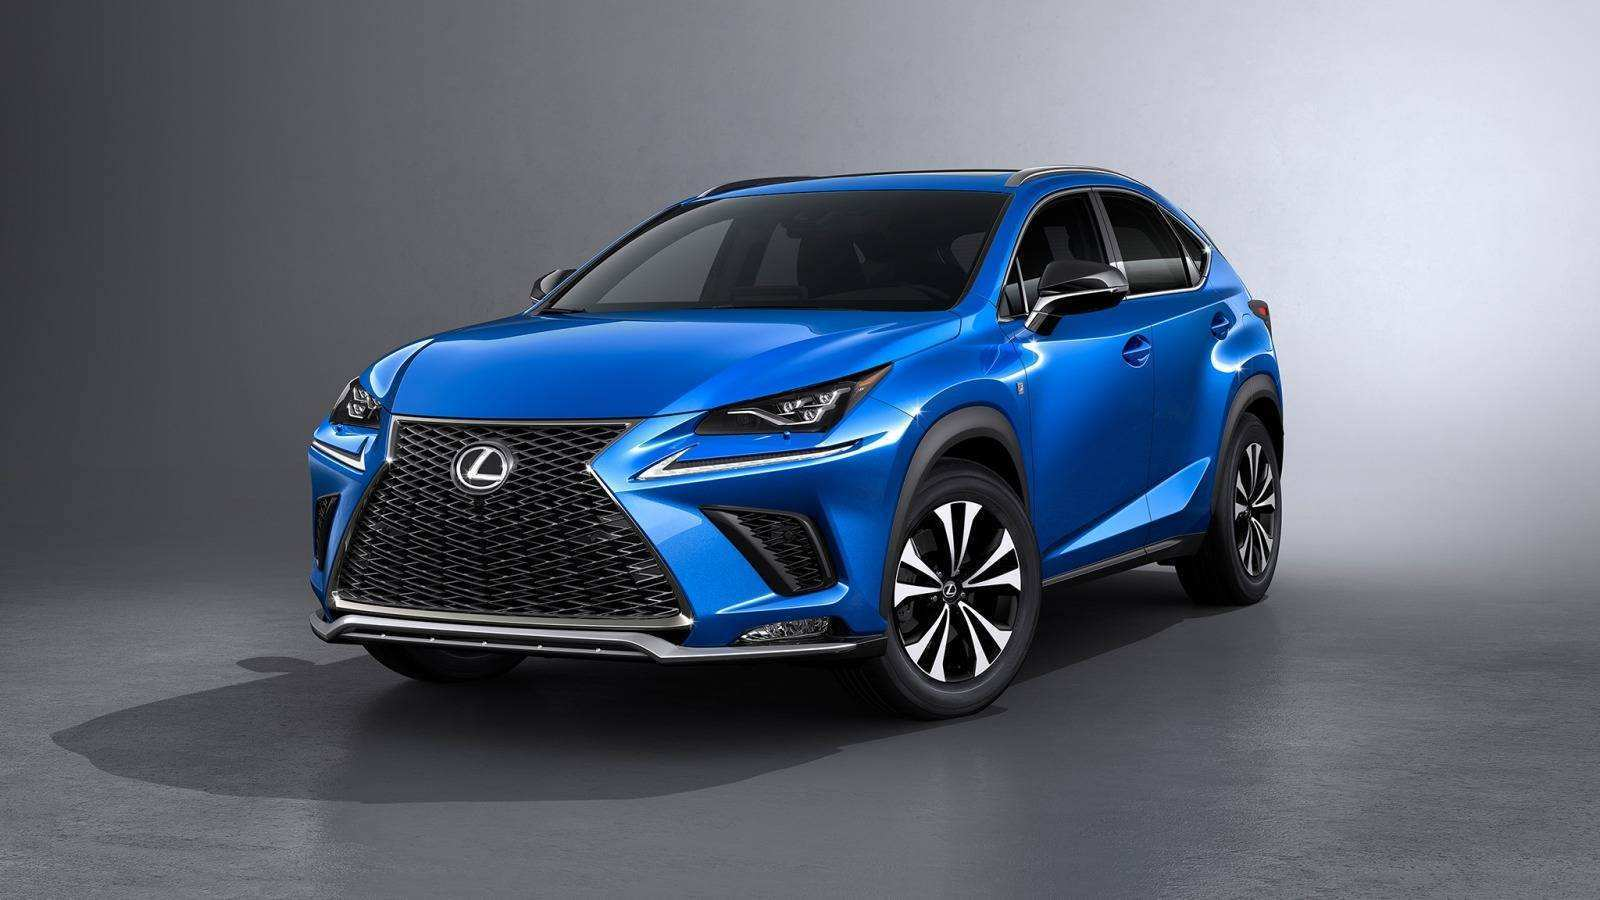 72 Concept of Rx300 Lexus 2019 Picture for Rx300 Lexus 2019